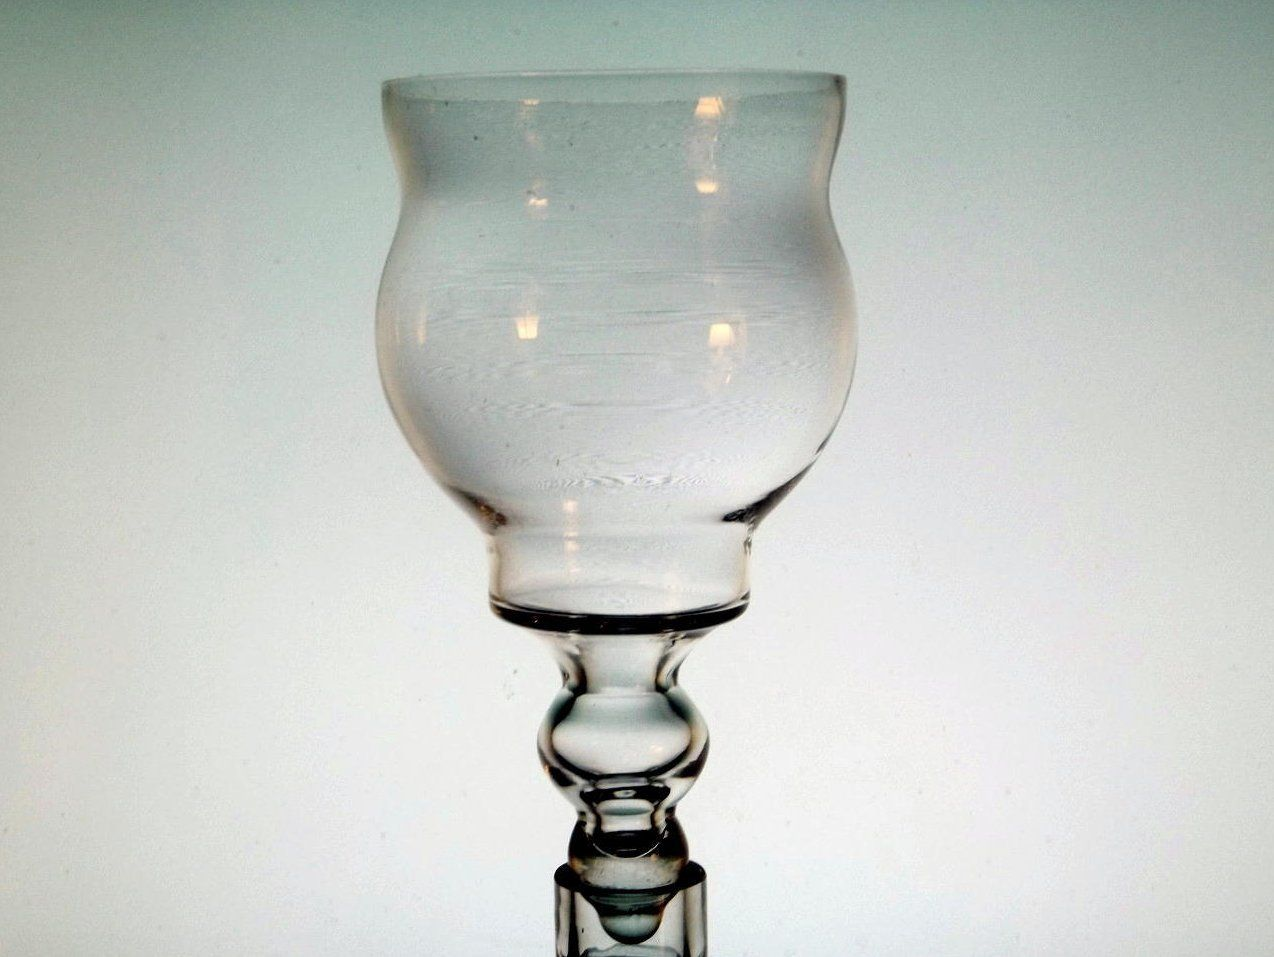 Hanging candle holder teardrop stem 5 5 inches x 3 1 8 for Used candle holders